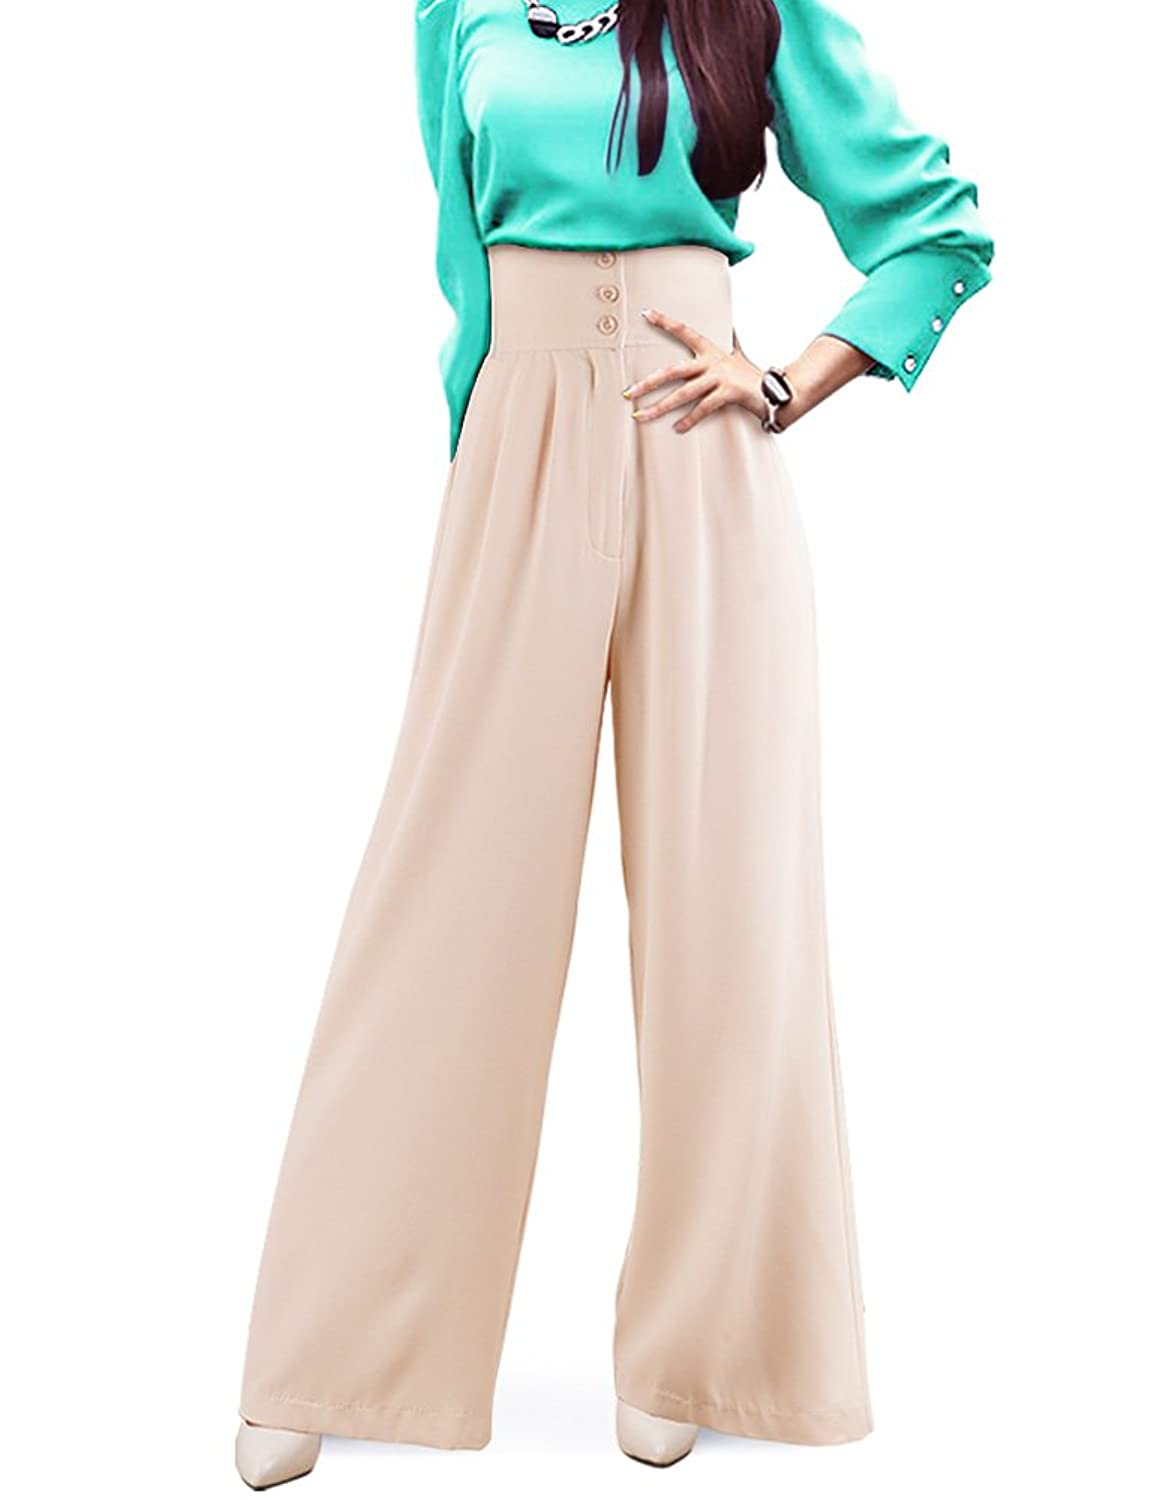 1920s Style Women's Pants, Trousers, Knickers, Tuxedo DELUXSEY Silhouette-Lengthening High Waist Wide Leg Pants Palazzo Pants 4 Women $34.99 AT vintagedancer.com